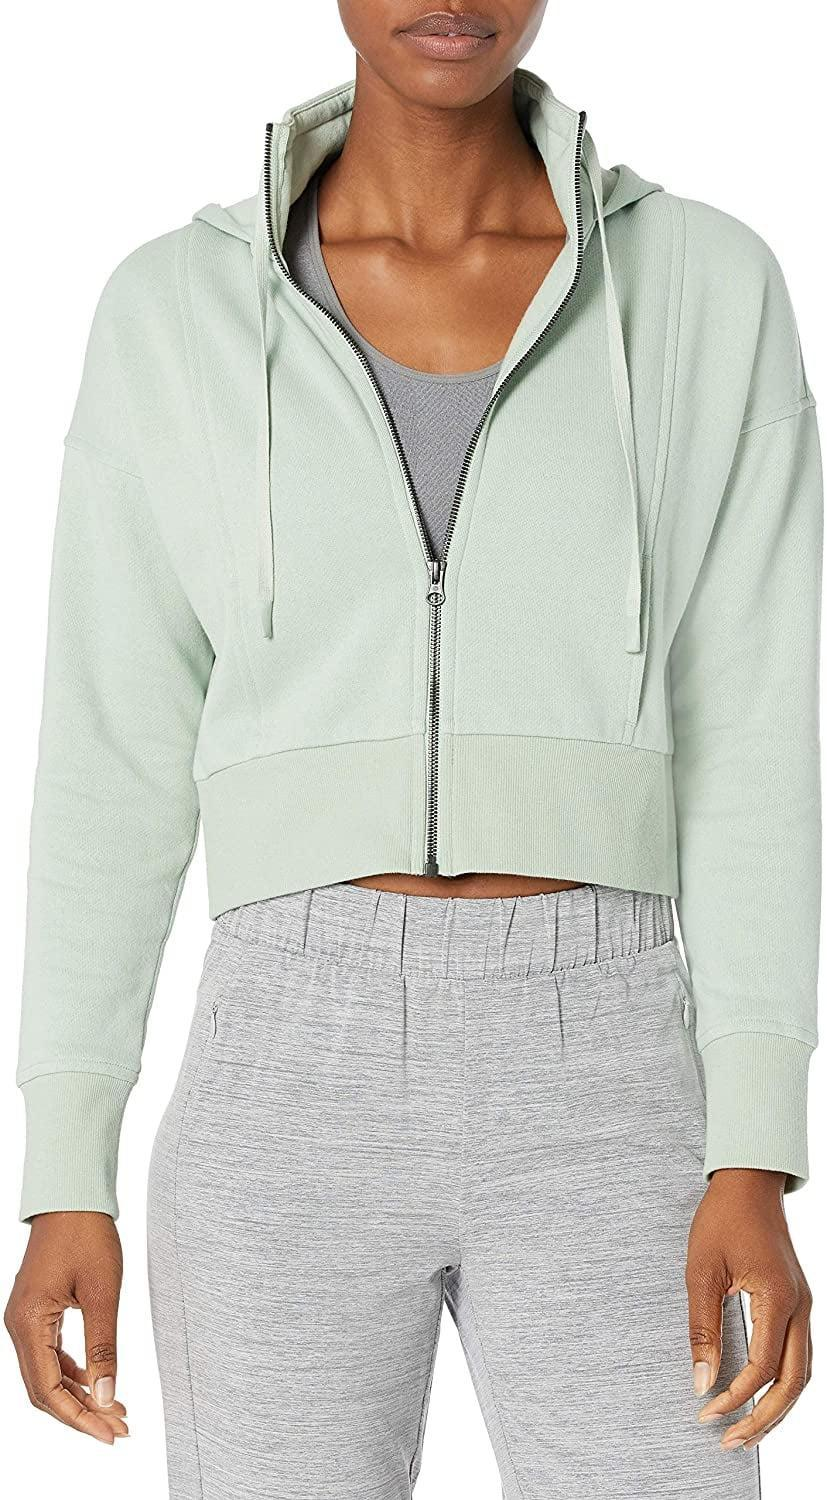 <p>Get this soft <span>Core 10 Super Soft Heavyweight Fleece Relaxed Fit Cropped Sweatshirt</span> ($36) for chilly days.</p>